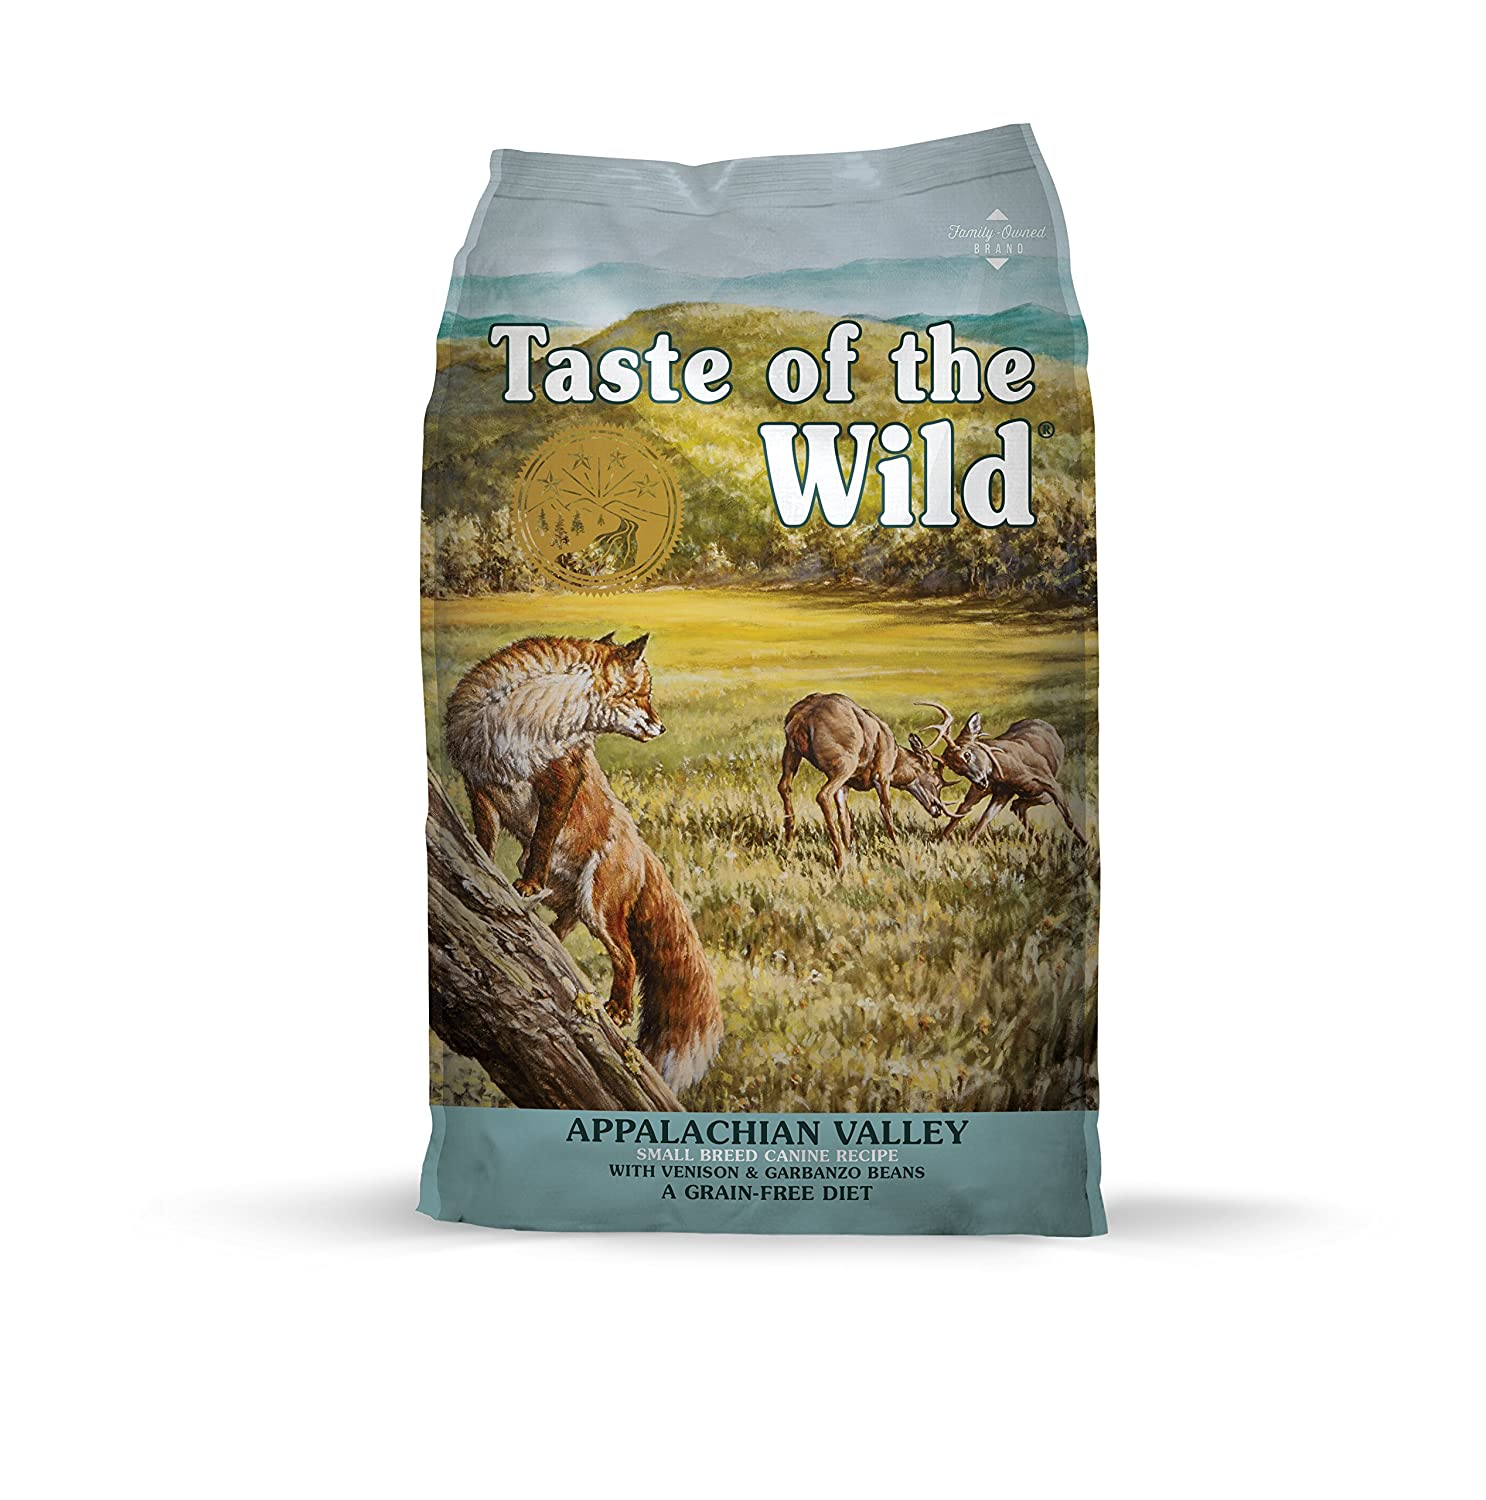 4. Taste of the Wild Grain Free High Protein Dry Dog Food for Small Breed